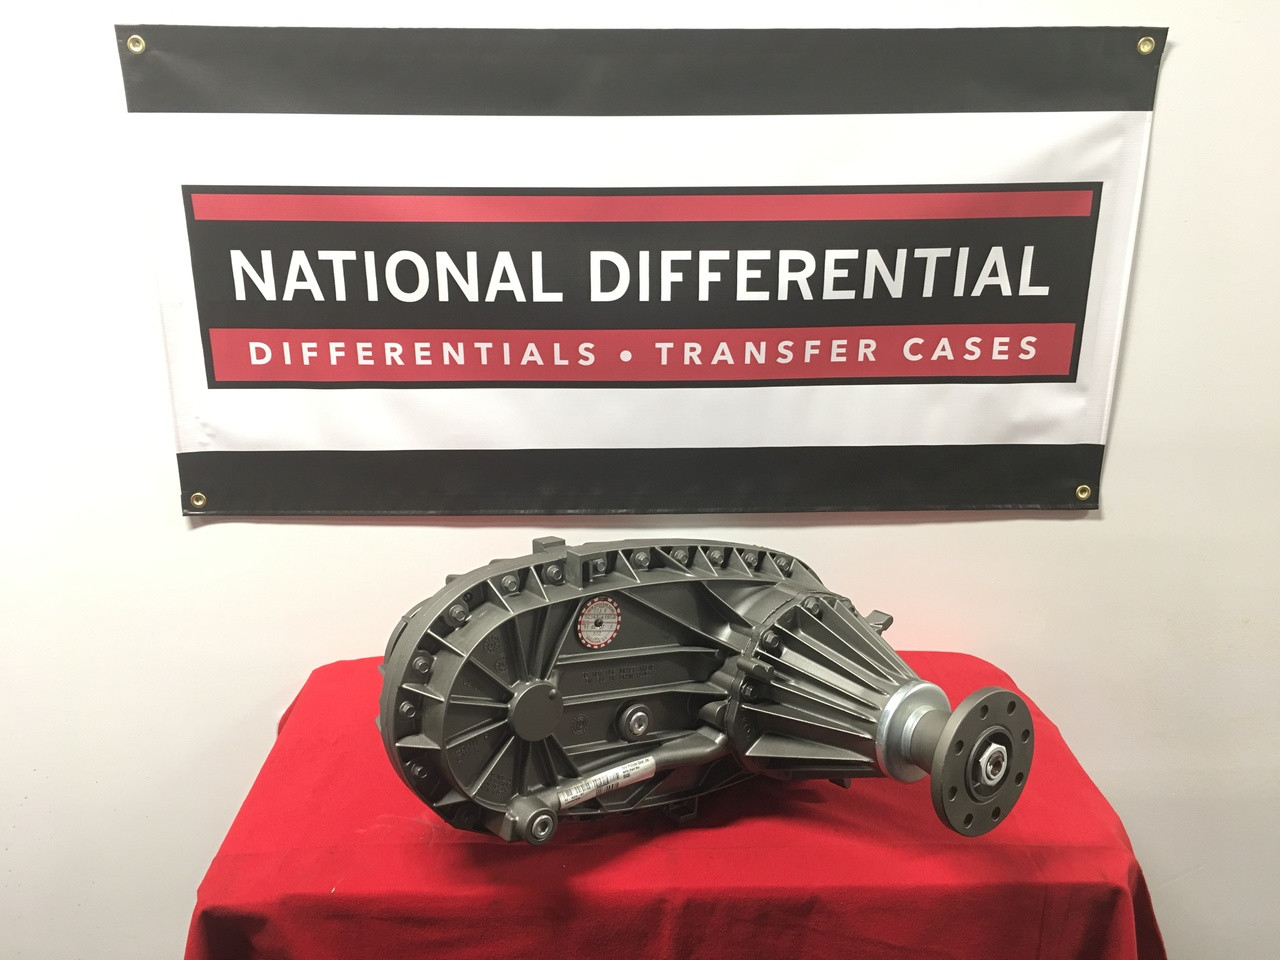 New Process NP 271 Transfer Case for 1999, 2000, 2001, 2002, 2003, 2004, 2005, and 2006 Ford Excursion SUV